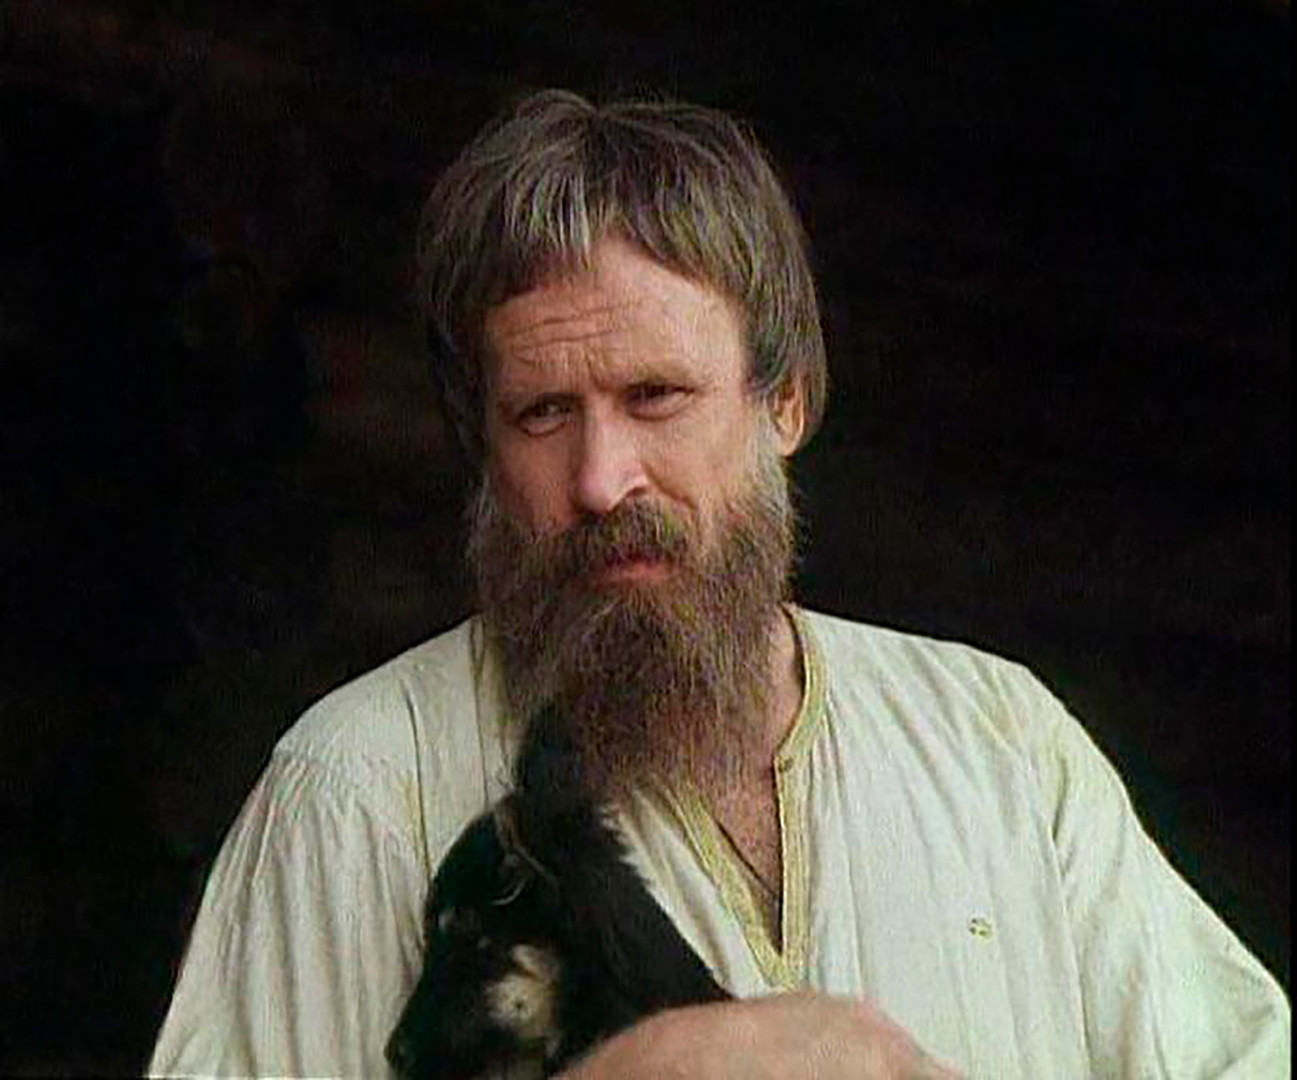 Boyar Kuchka. A frame from the Yuri Dolgoruky movie (1998).